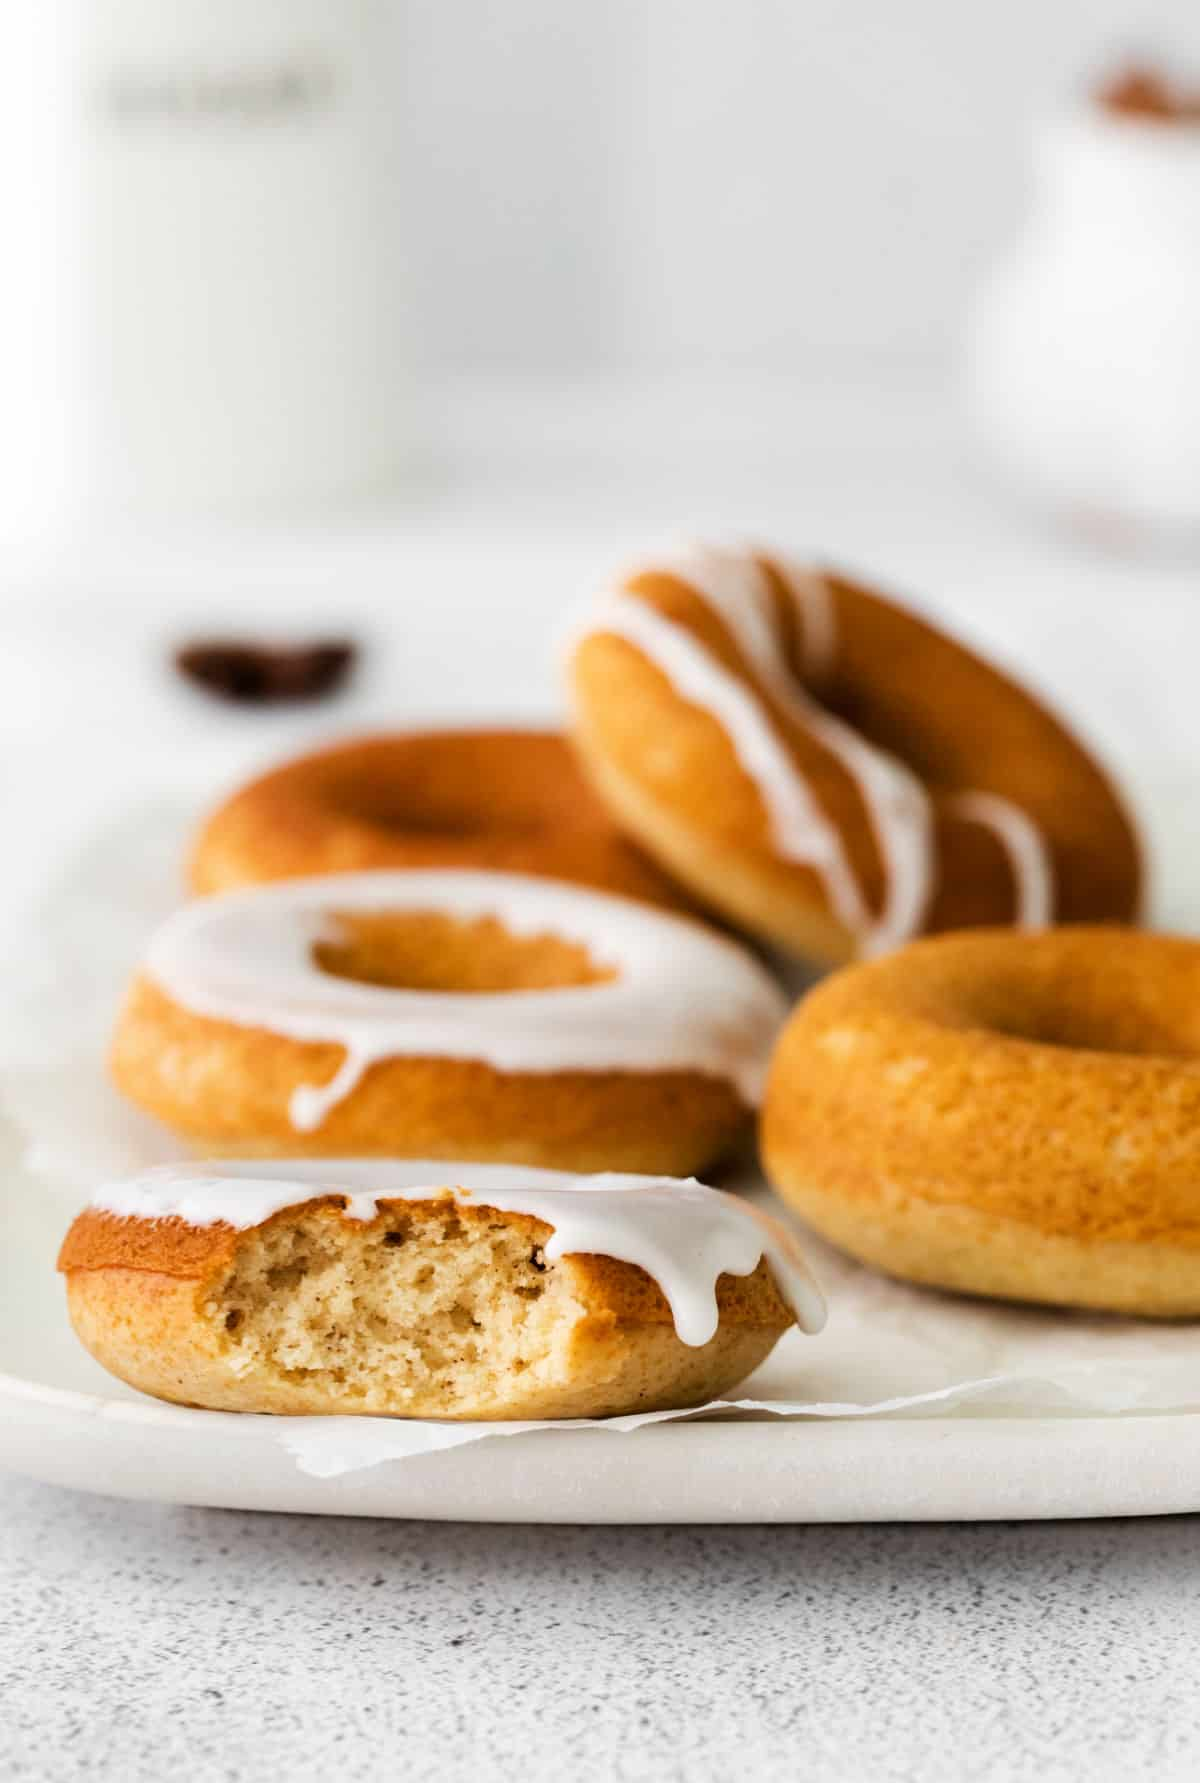 Chai spiced donuts on a plate, drizzled and frosted with vanilla icing.